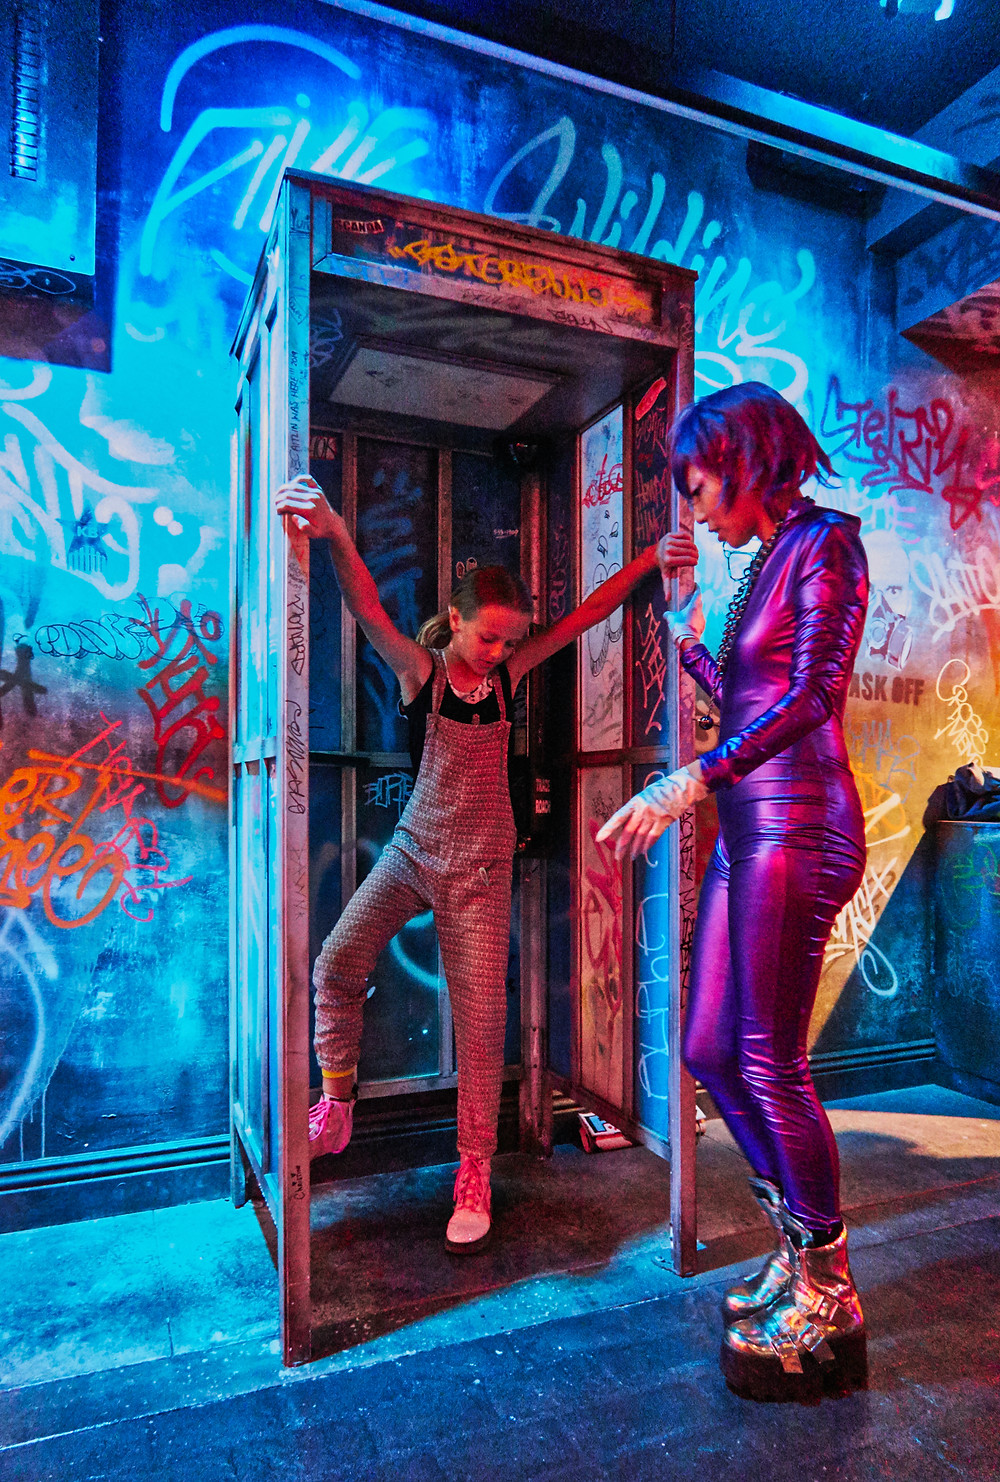 Judy Choi and Mila check out the Graffiti Phonebooth at R.U.N. Cirque du Soleil Show, photo by Francis George